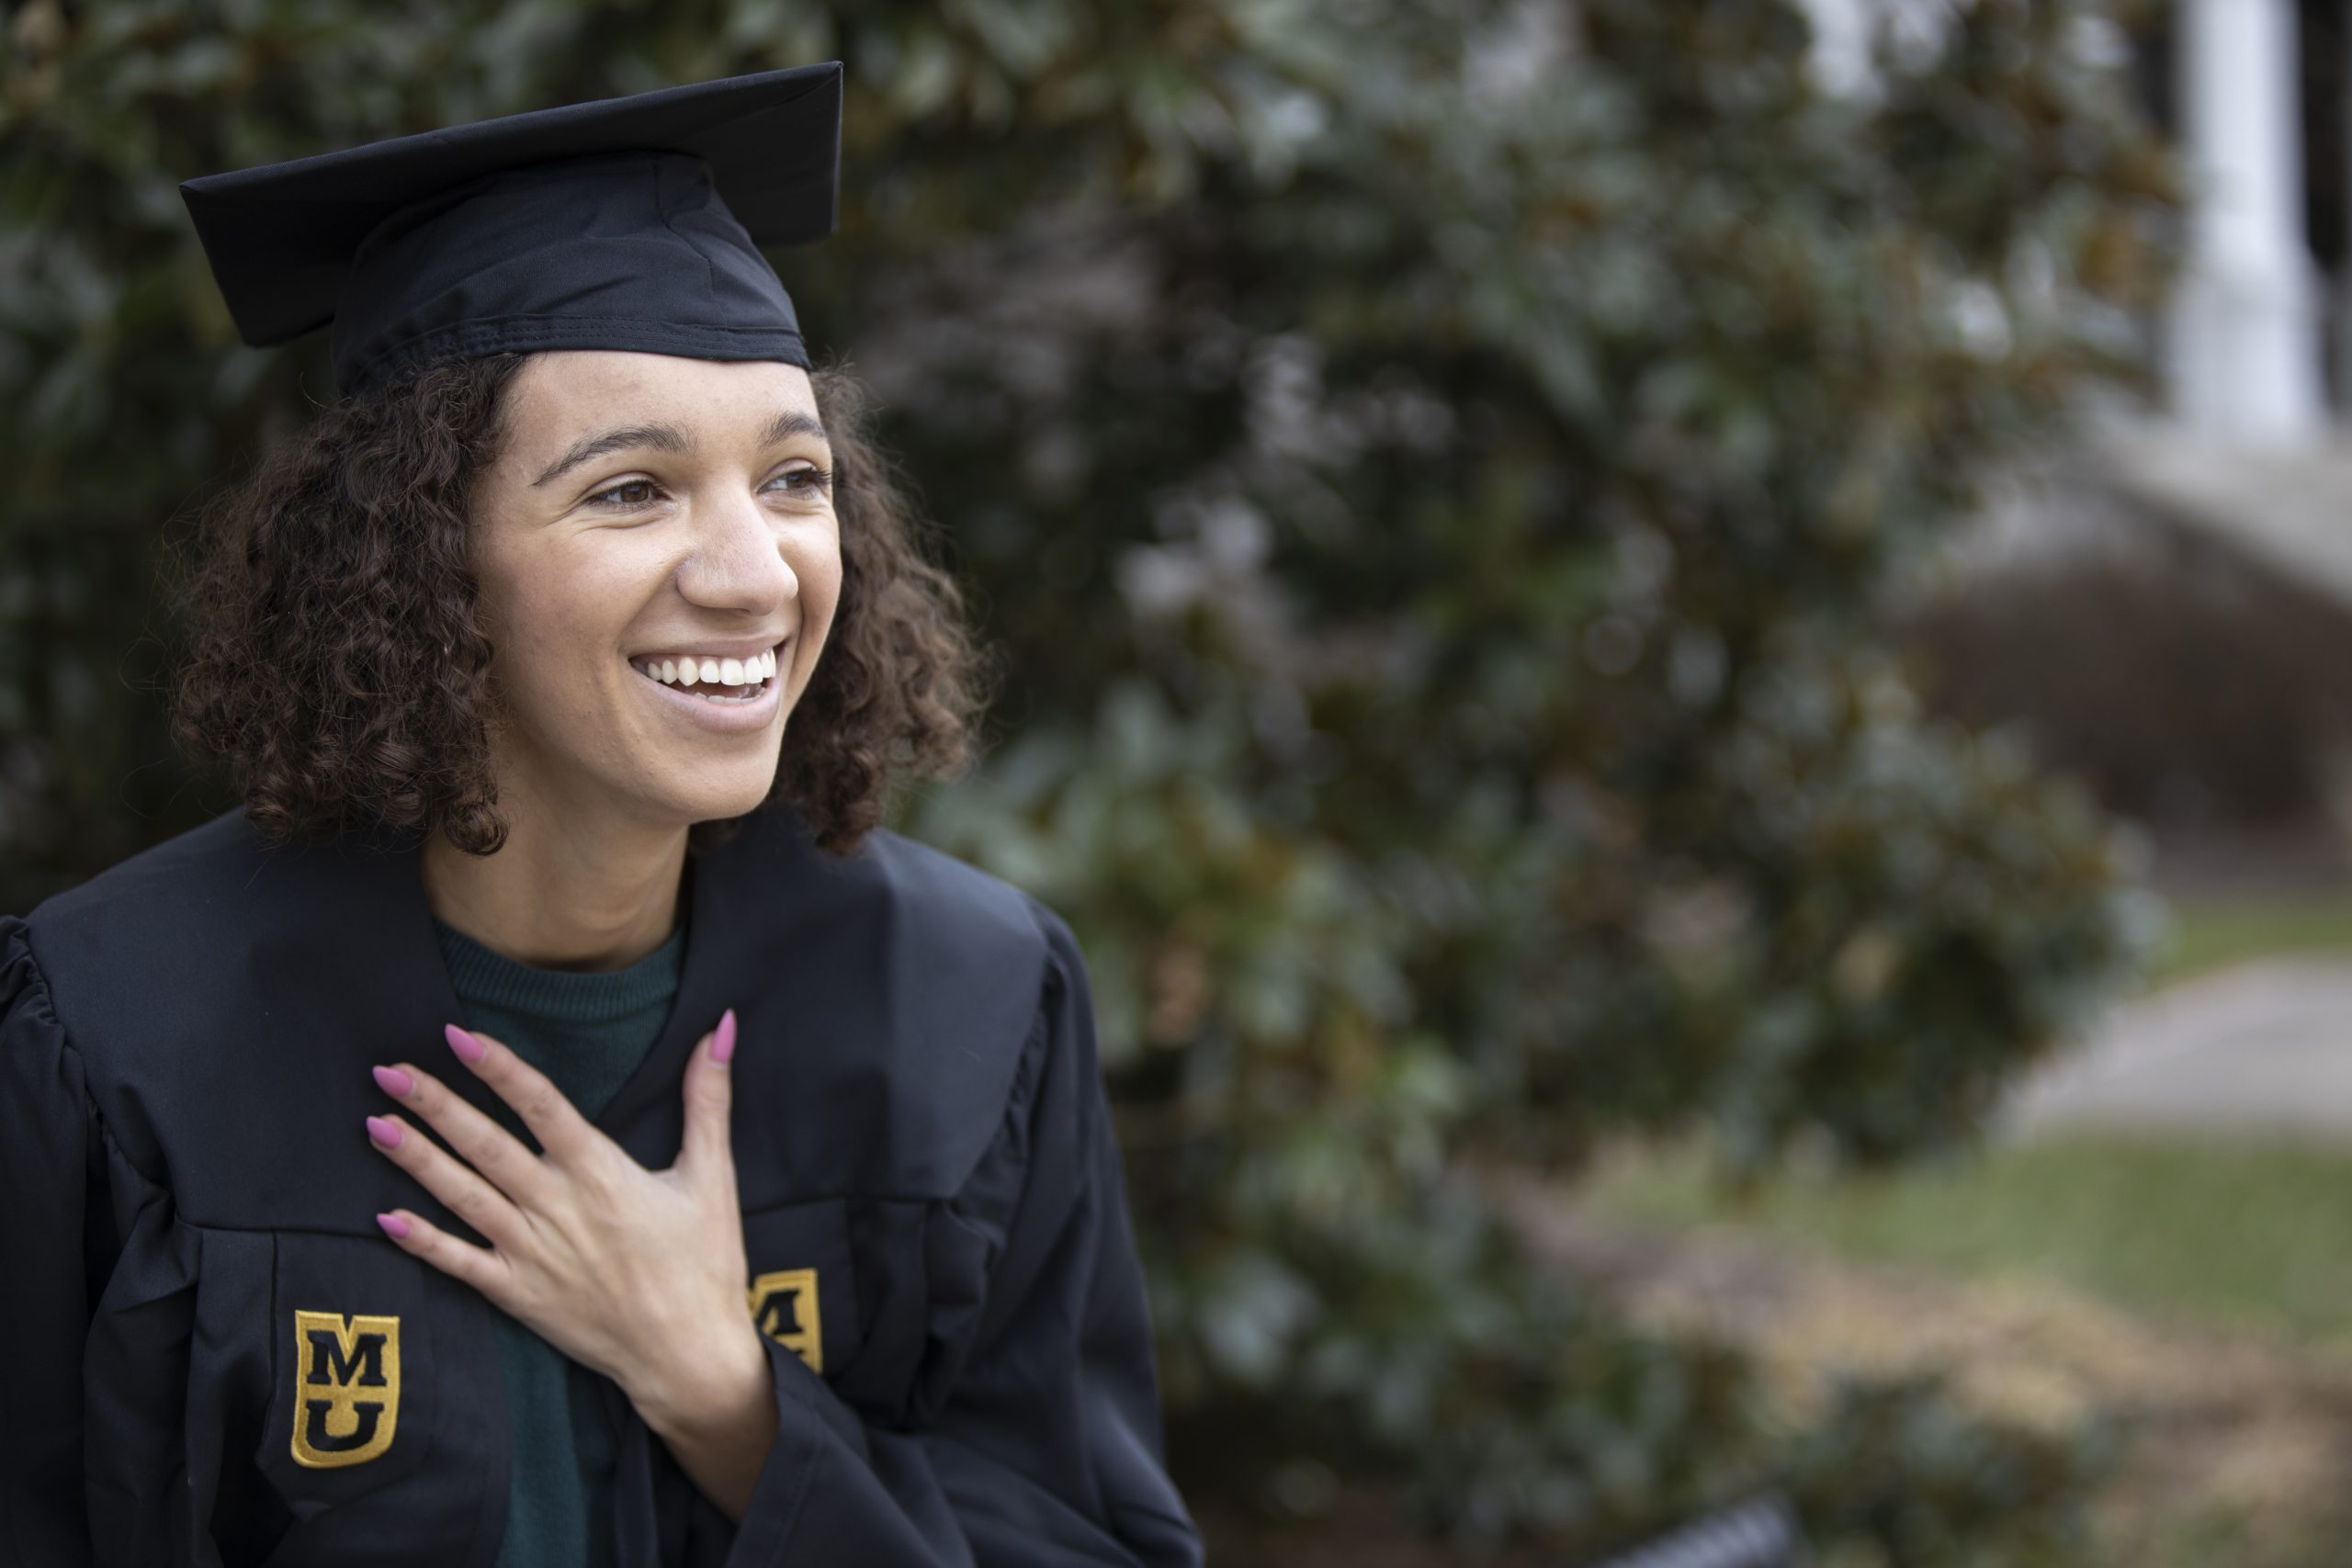 graduate smiling in a cap and gown